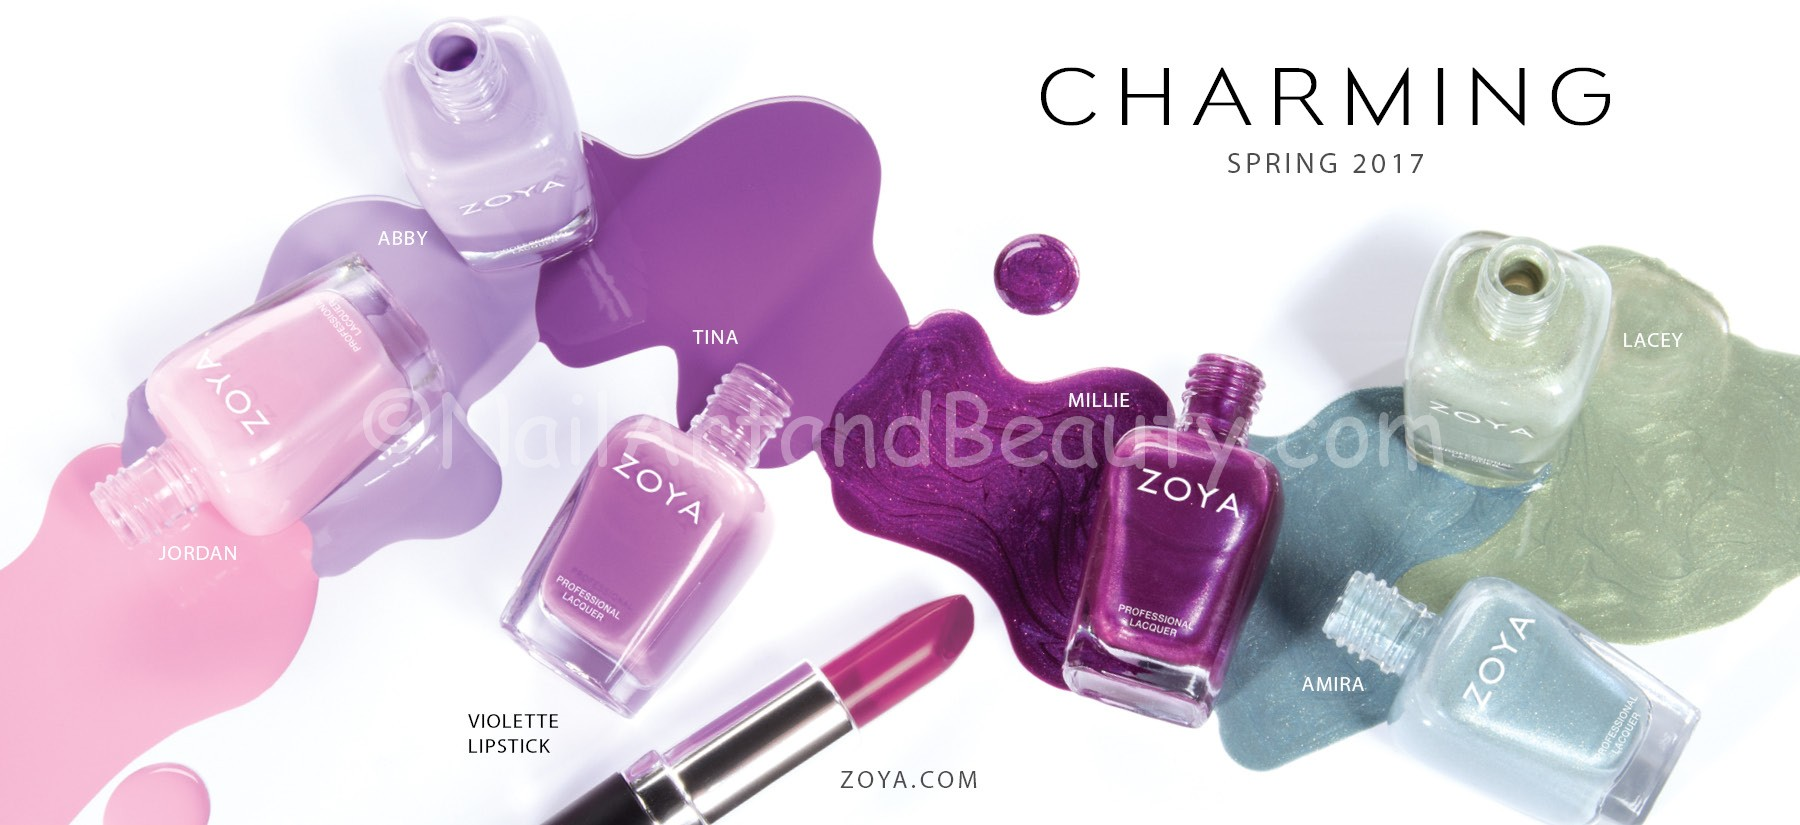 Zoya Charming- Spring 2017 Collection with Lipsticks